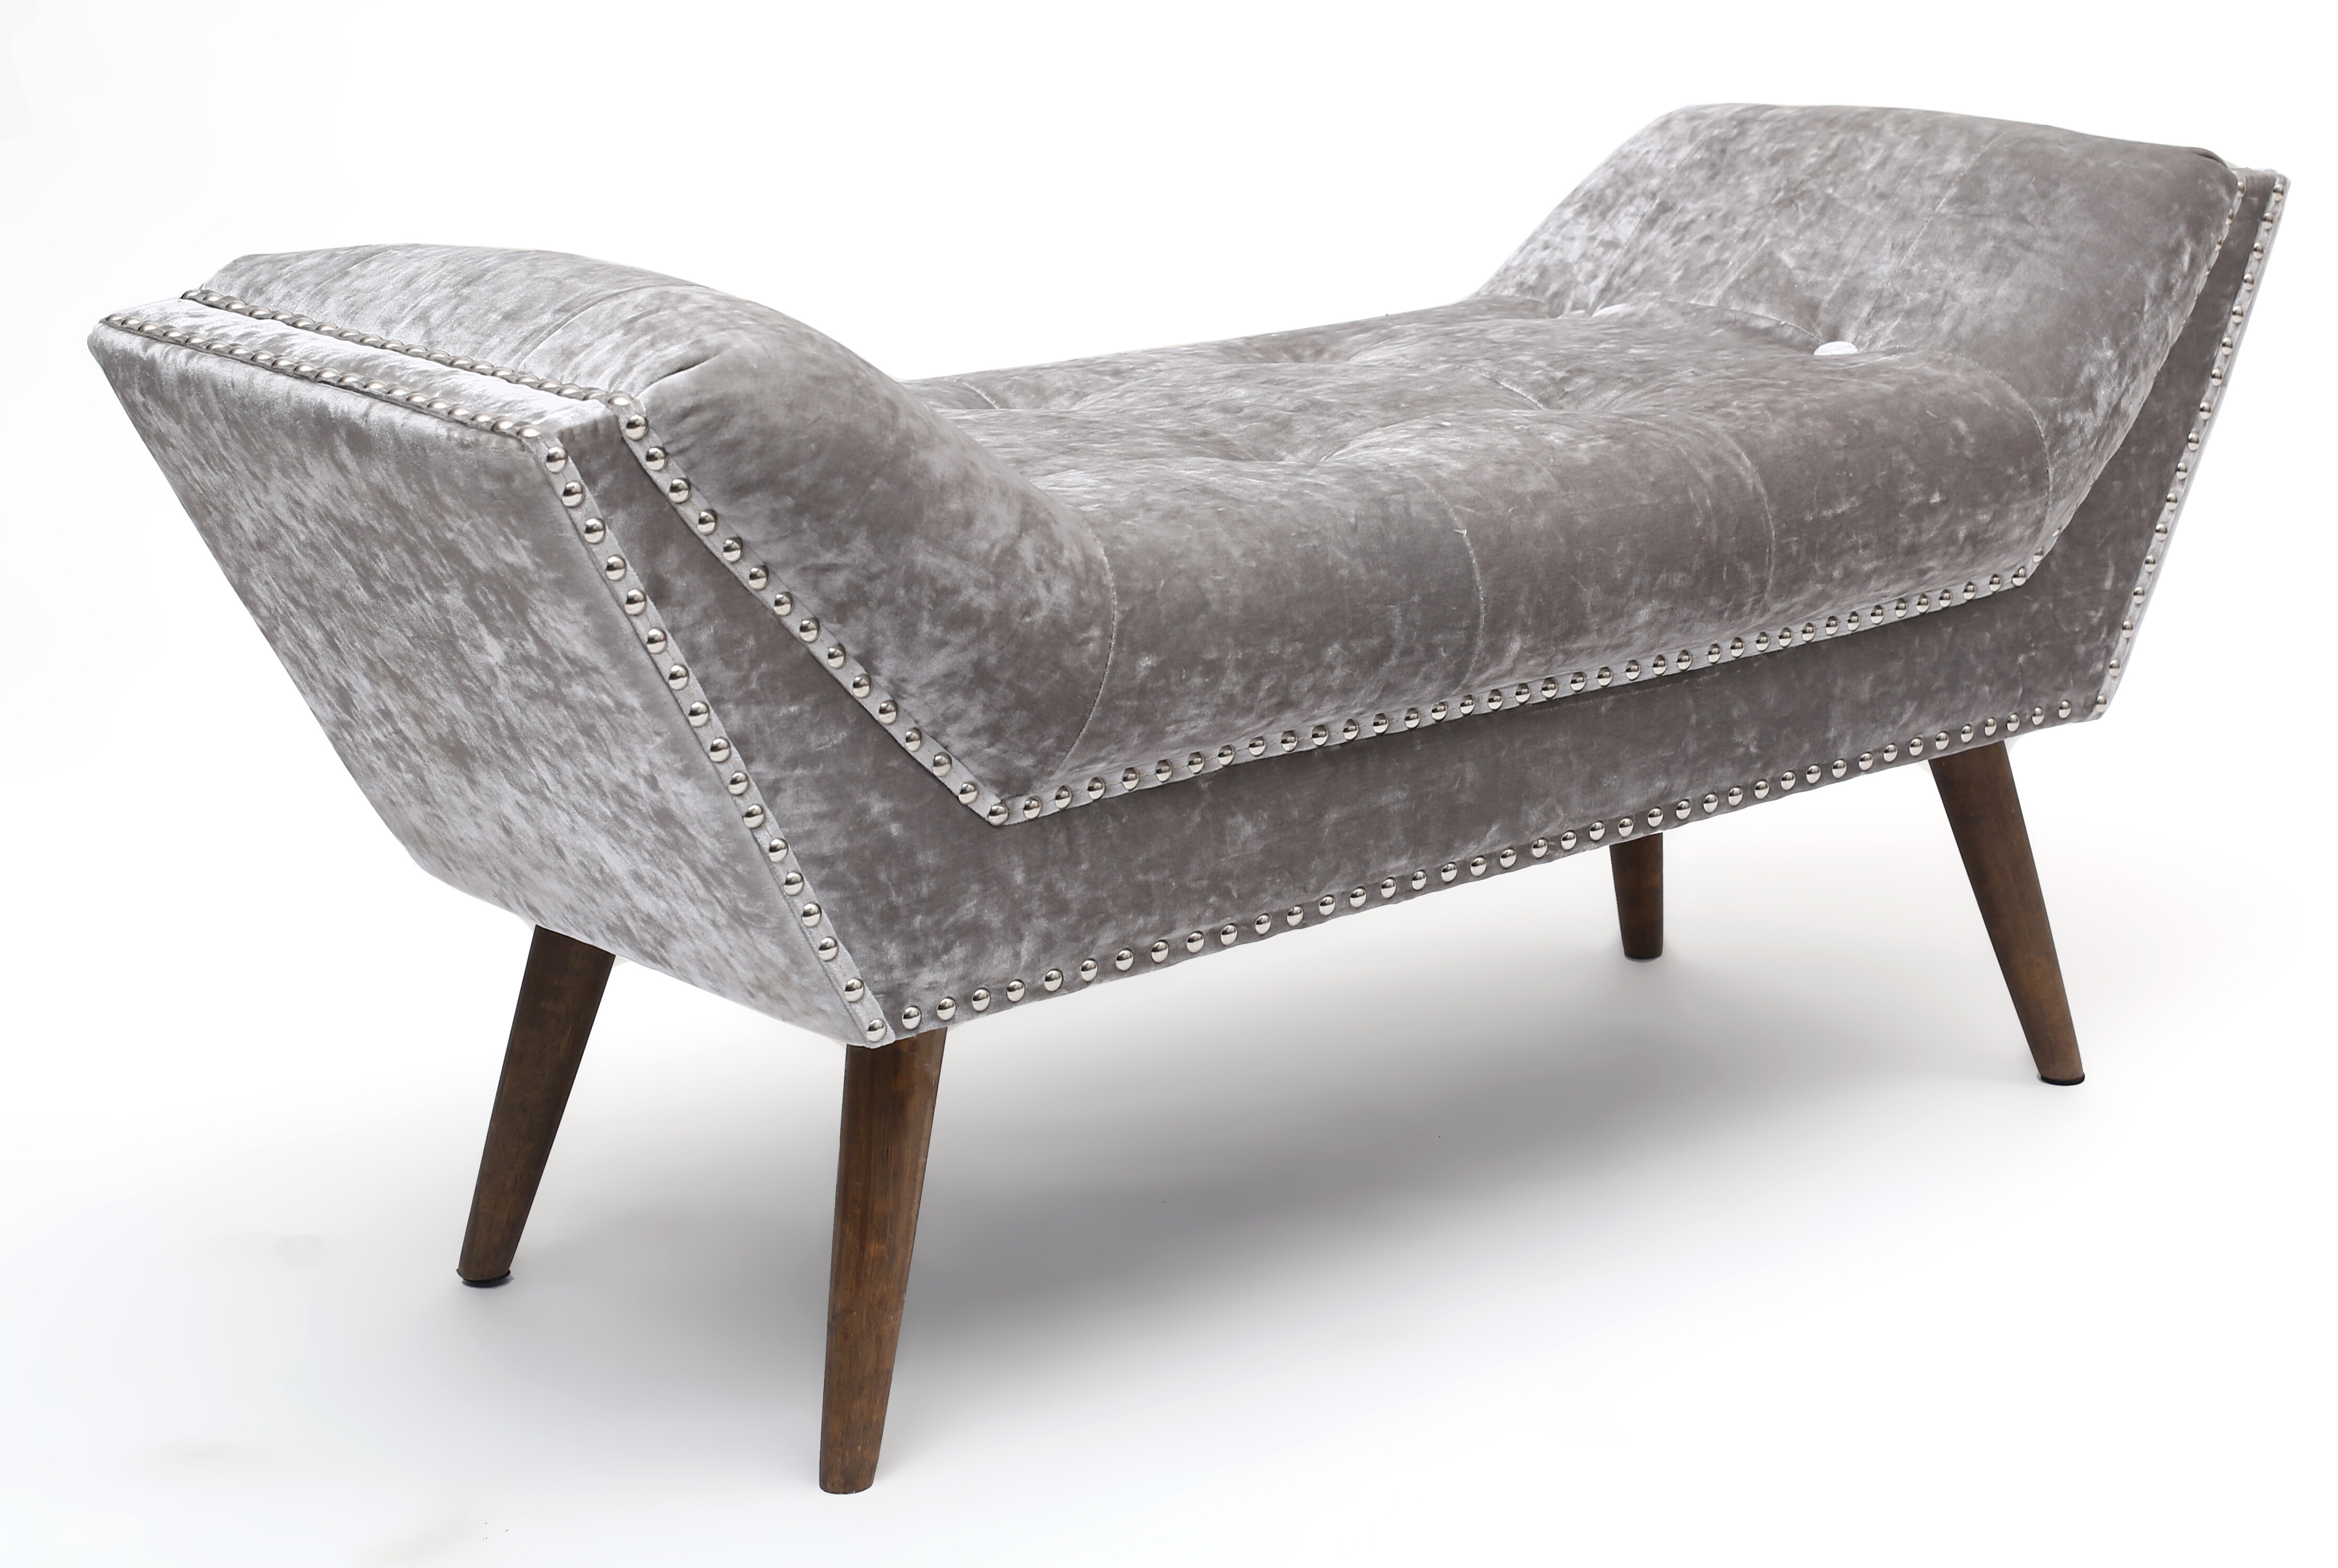 Castleton Home Mulberry Chaise Longue & Reviews | Wayfair.co.uk on chaise sofa sleeper, chaise furniture, chaise recliner chair,